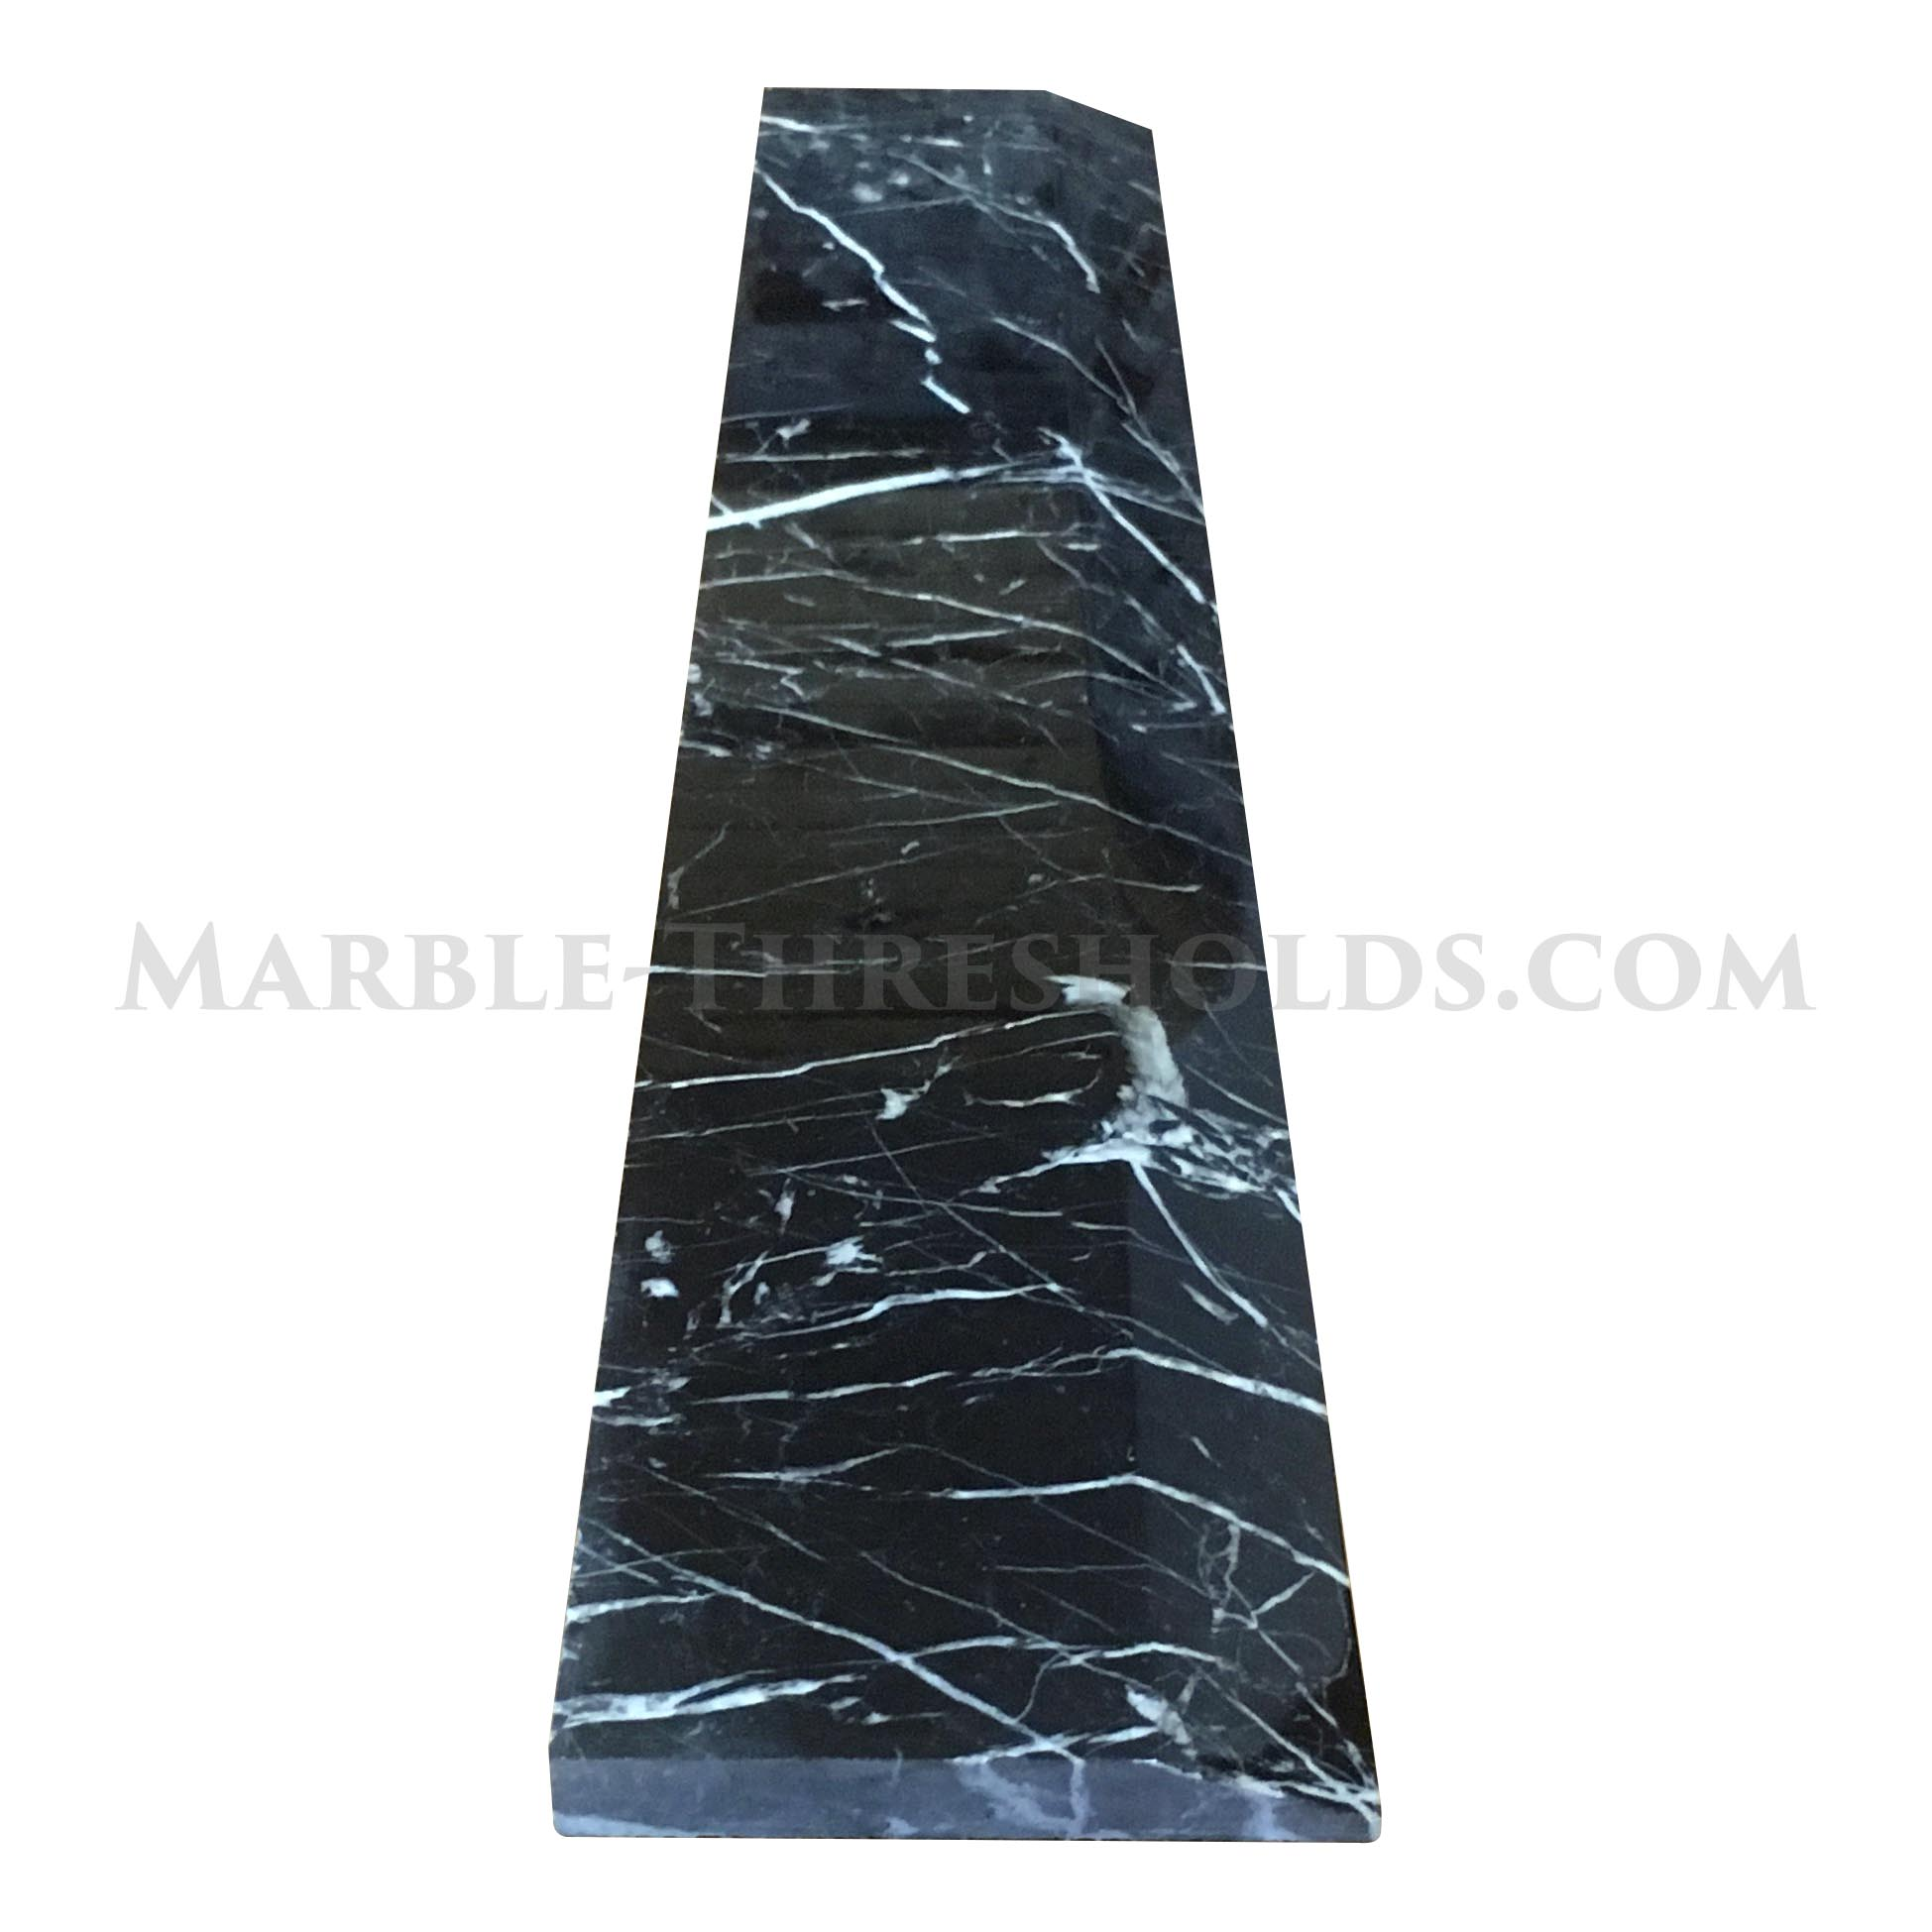 Nero Marquina Marble Door Threshold  sc 1 st  Marble-Thresholds.com & Single Hollywood Door Threshold - Nero Marquina Marble - 36 x 6 ...